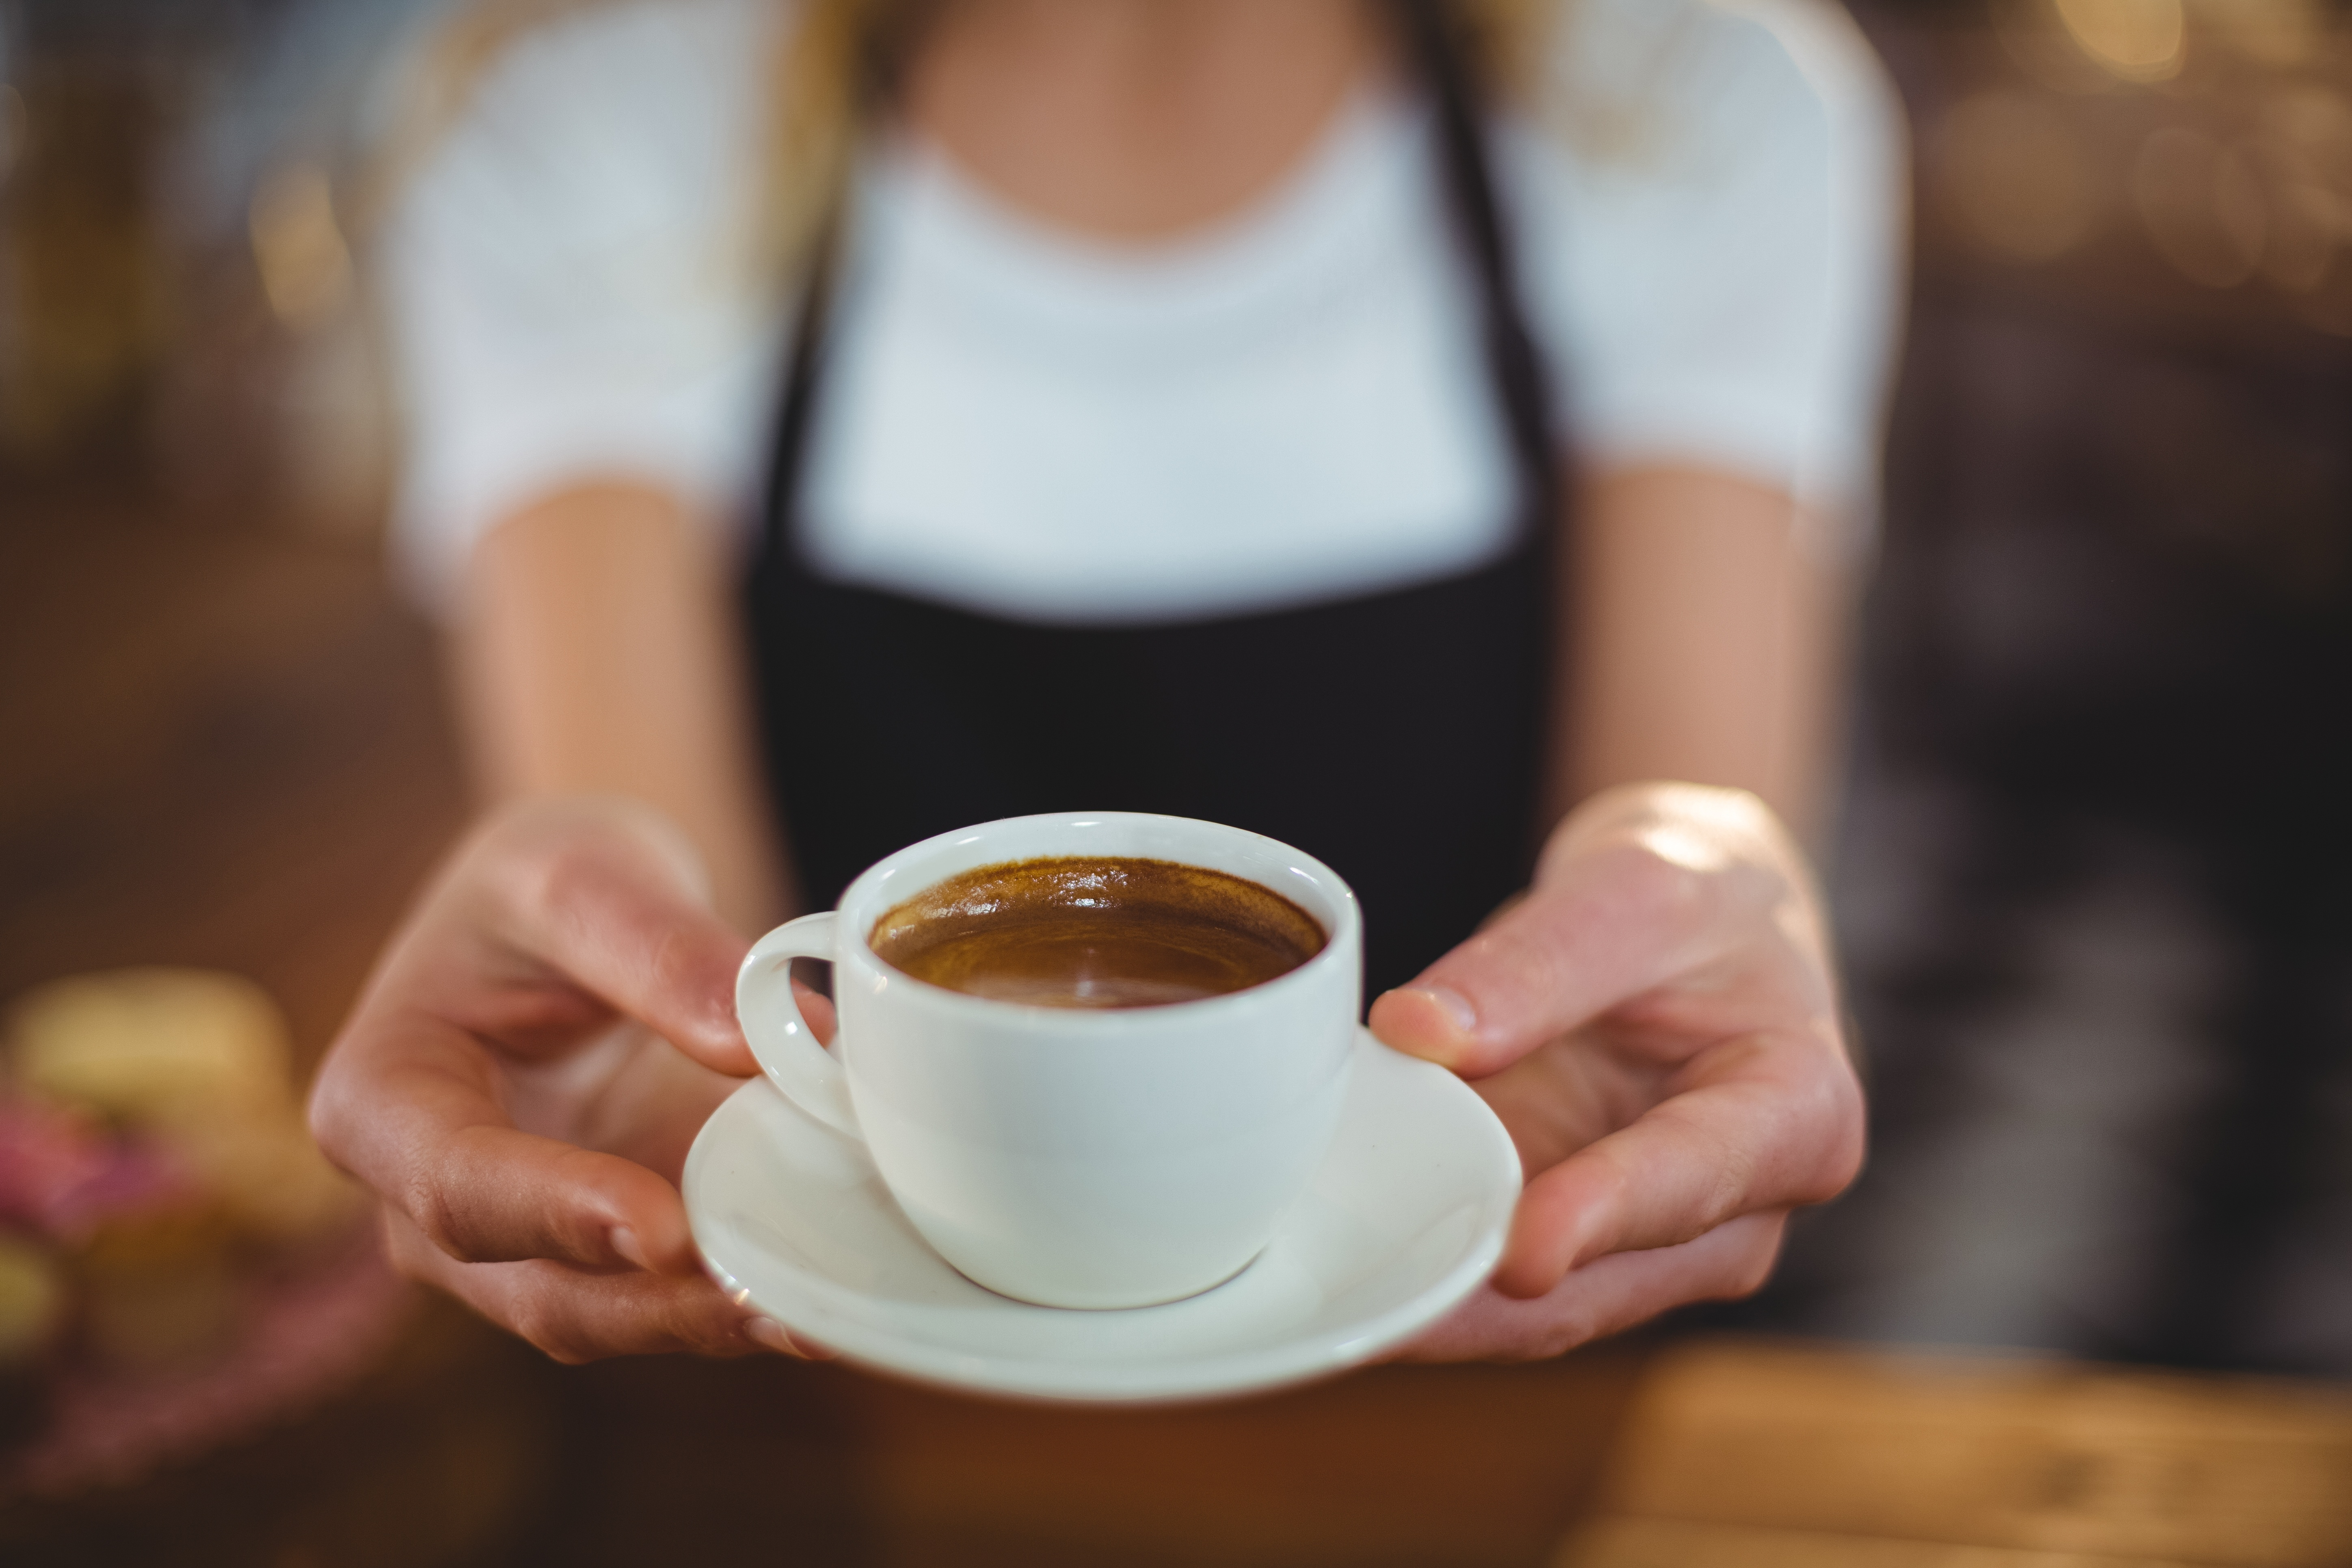 A new study suggests that drinkingthree to four cups of coffee a day might helpreduce your risk ofliver cancer.